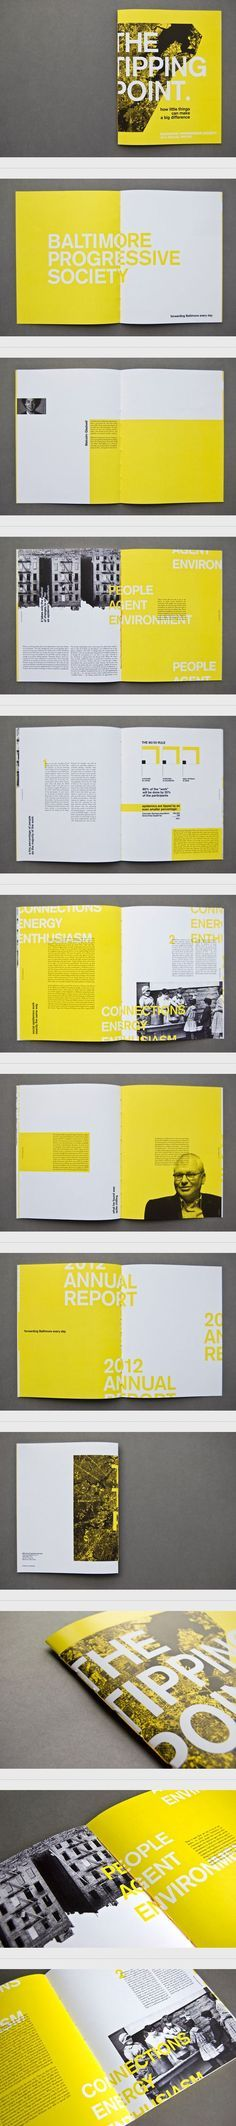 2 colores, un audaz amarillo y un negro acompañante // The Tipping Point: Annual Report More